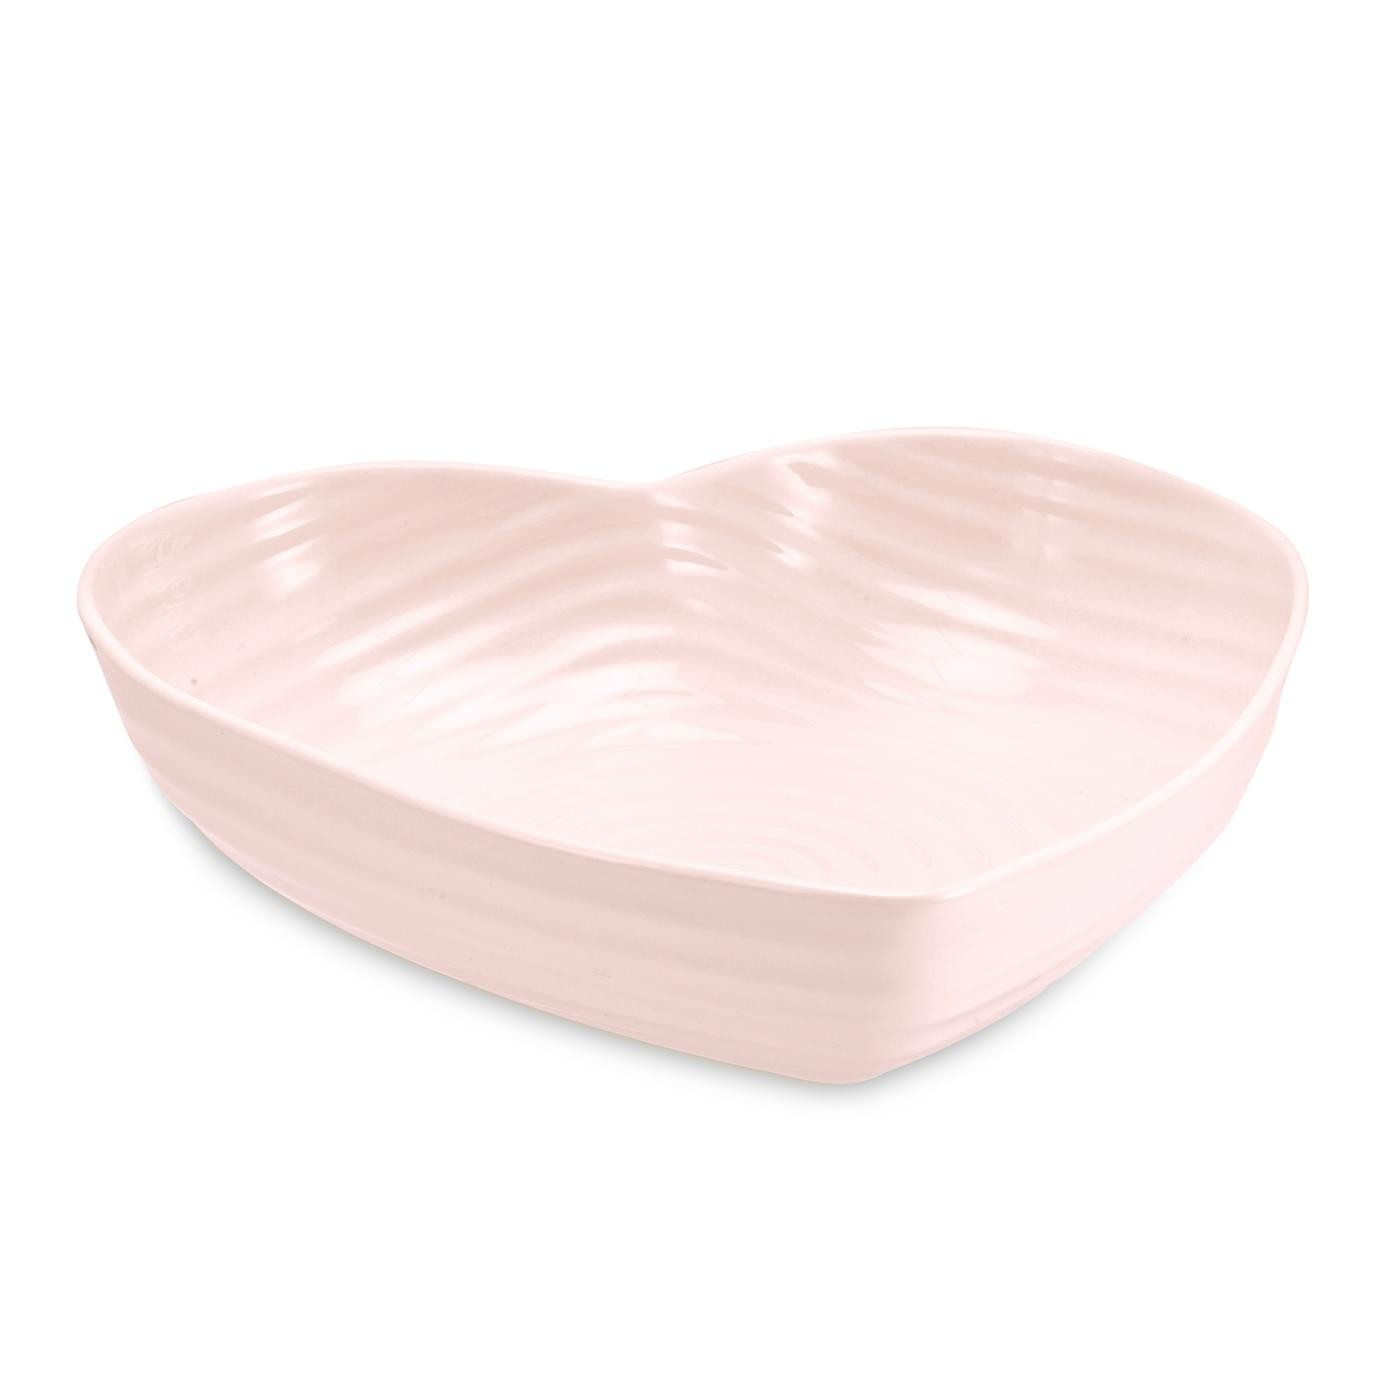 Sophie Conran for Portmeirion Pink Small Heart Bowl - Portmeirion UK